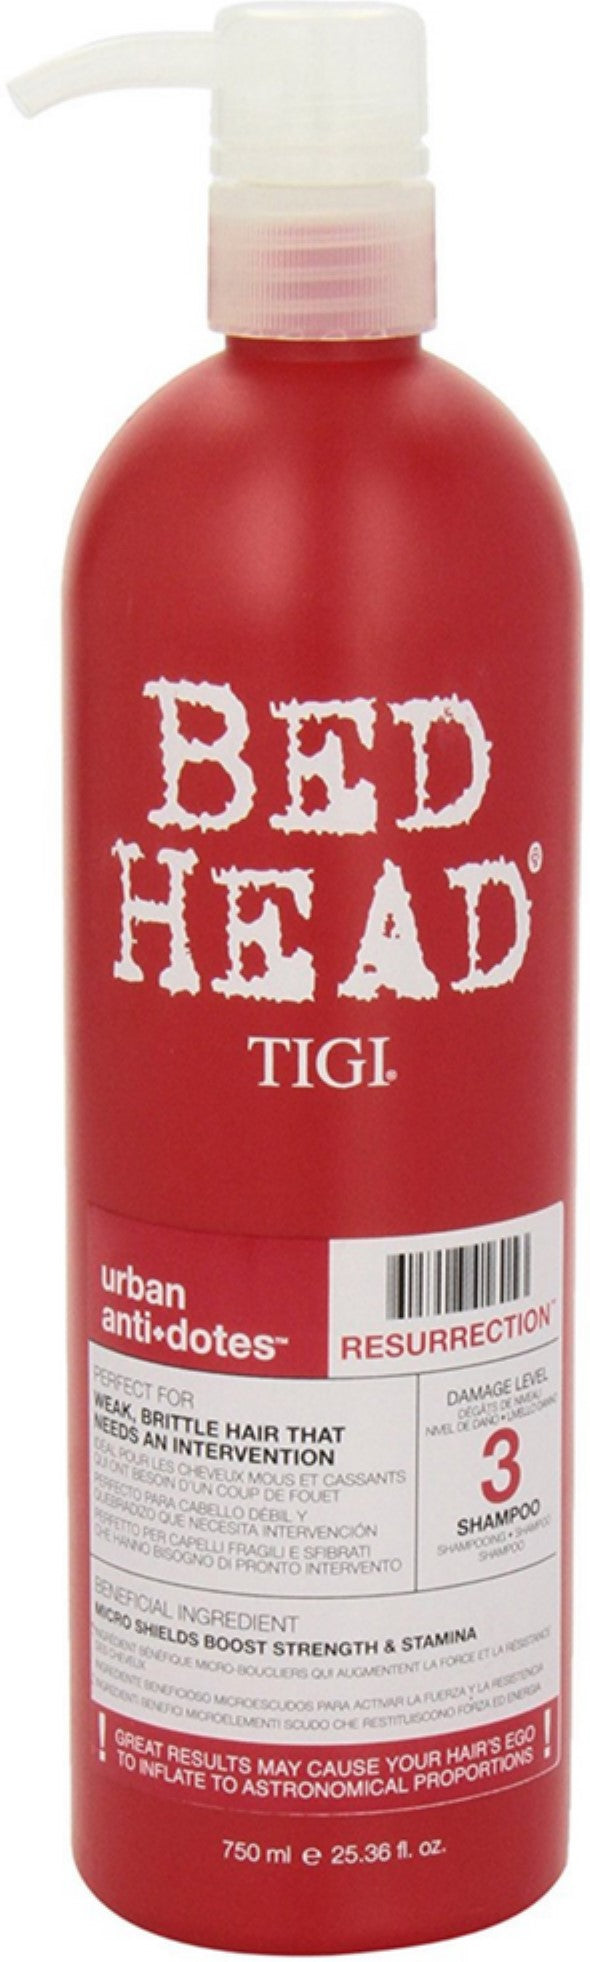 TIGI Bed Head Urban Anti+dotes Resurrection Shampoo 25.36 oz